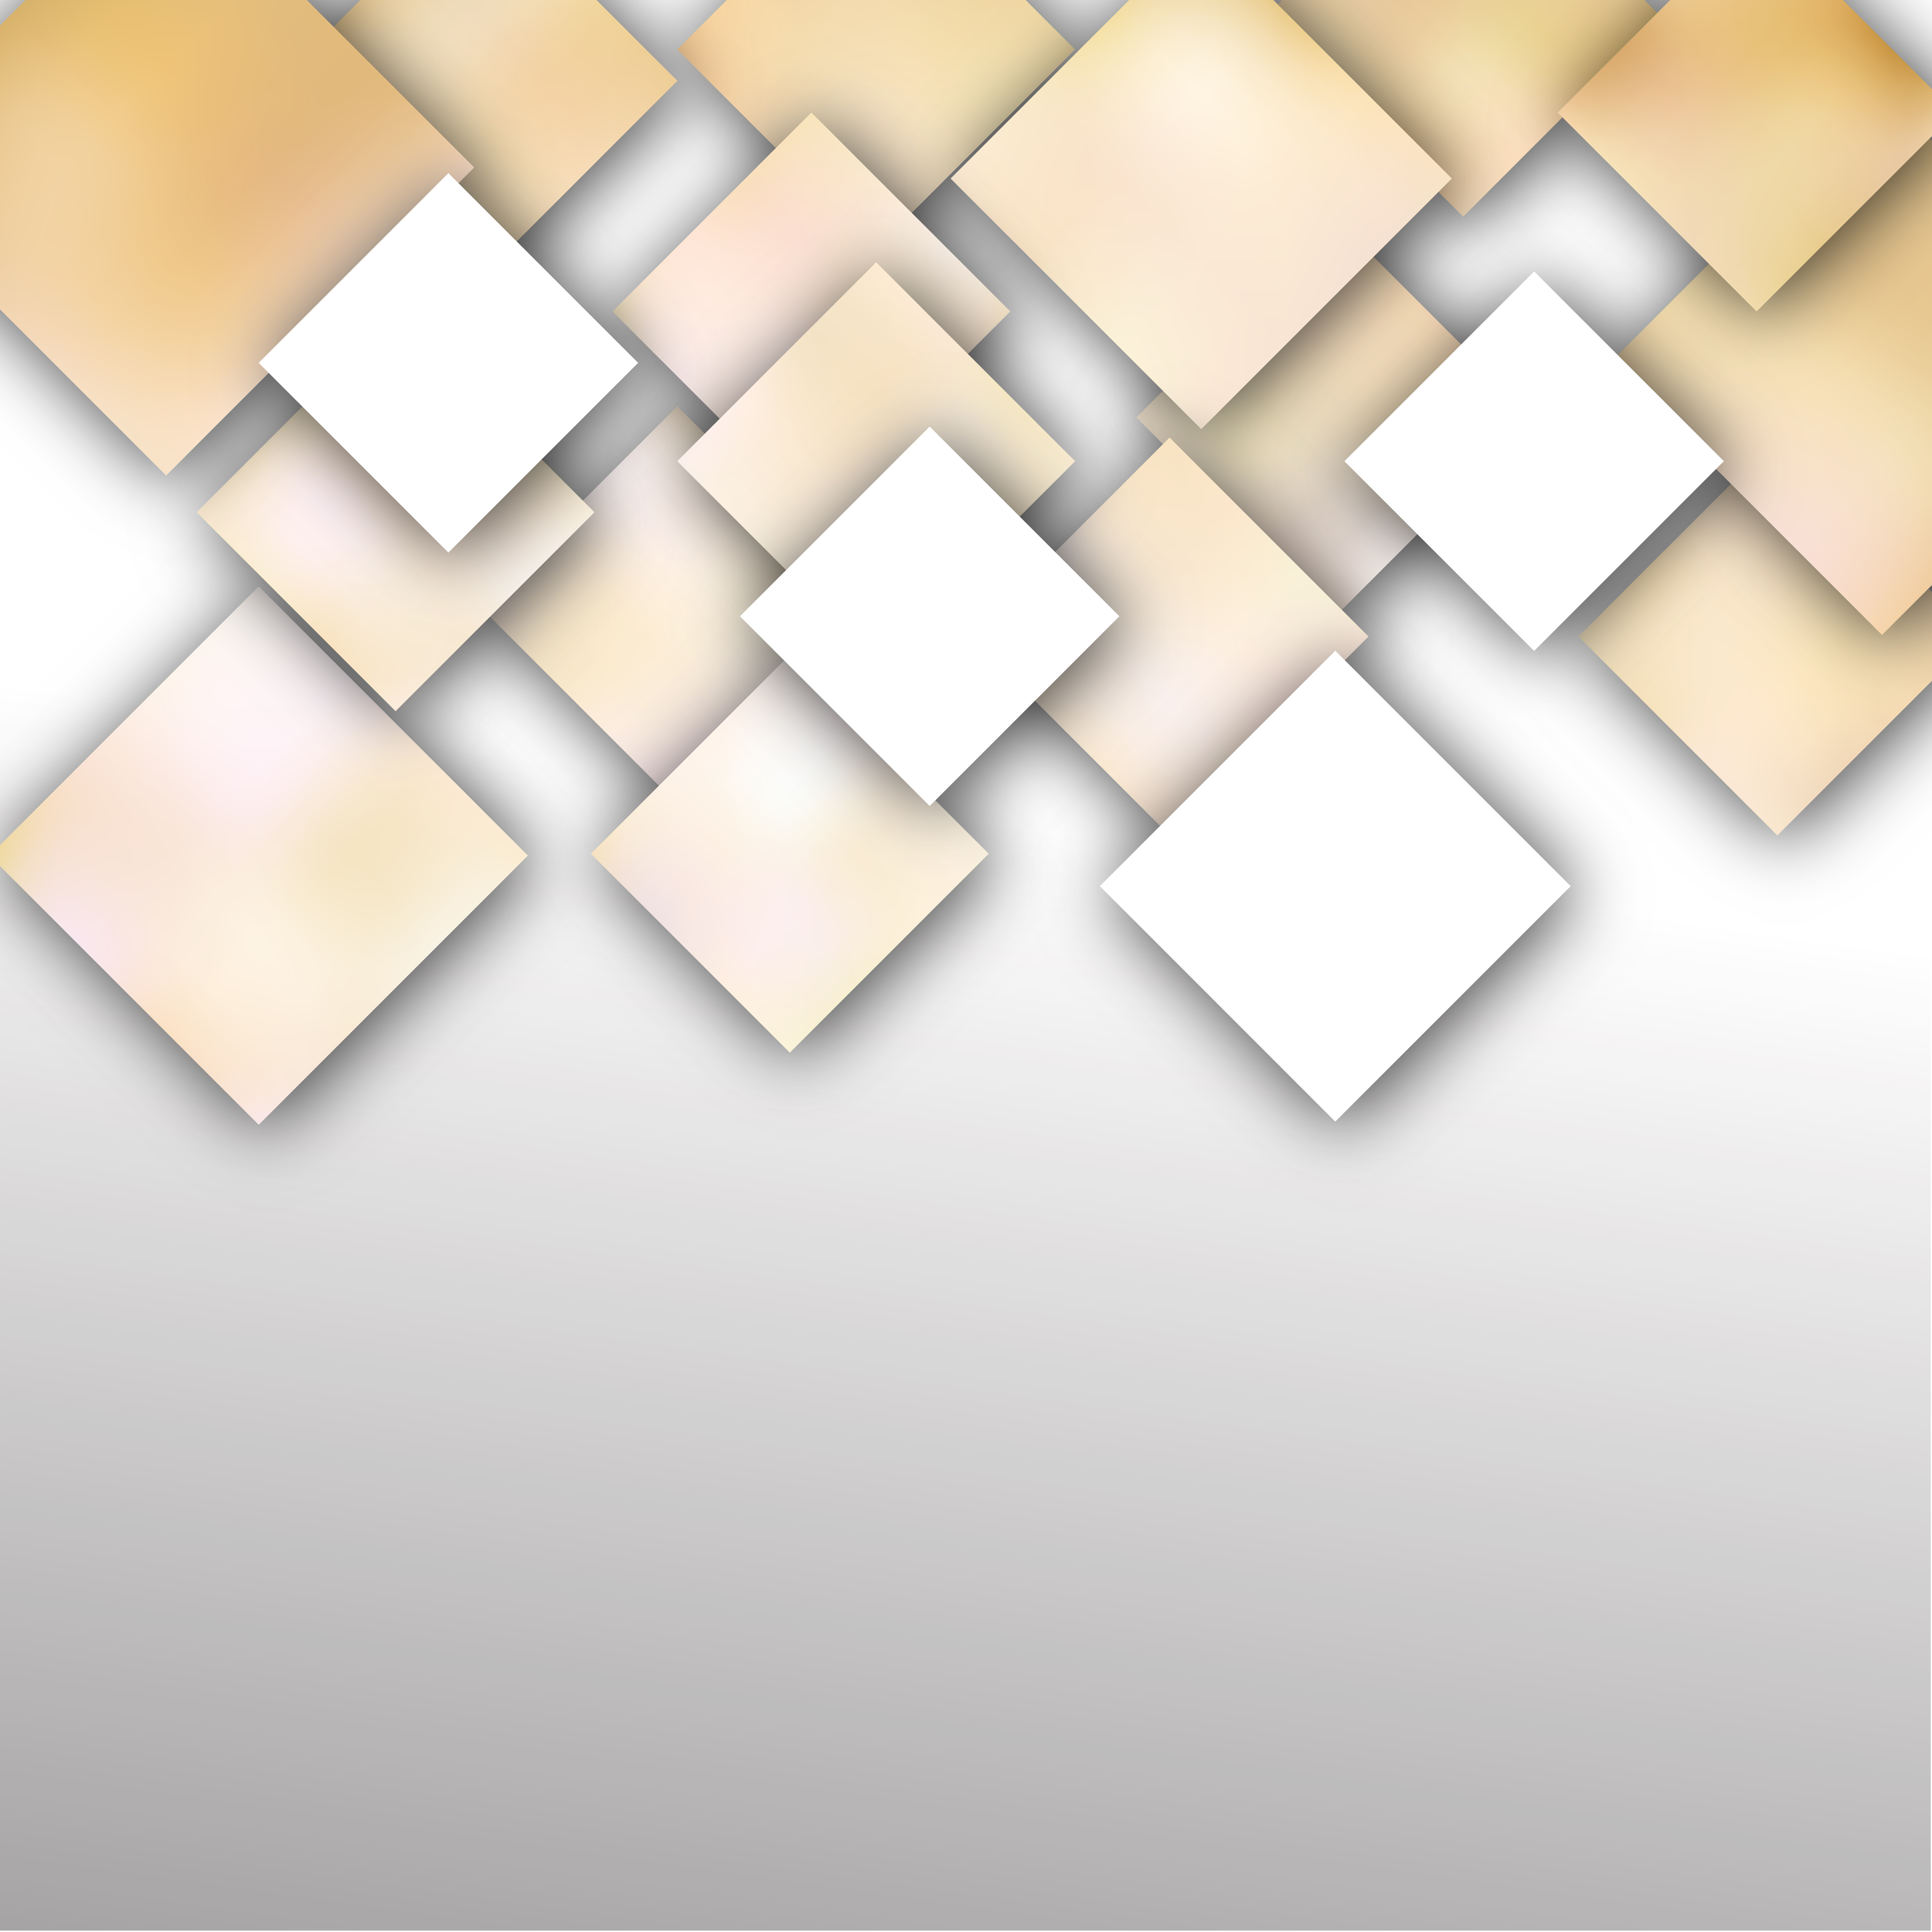 Modern Brown and White Square Background Design Template 8000x8000